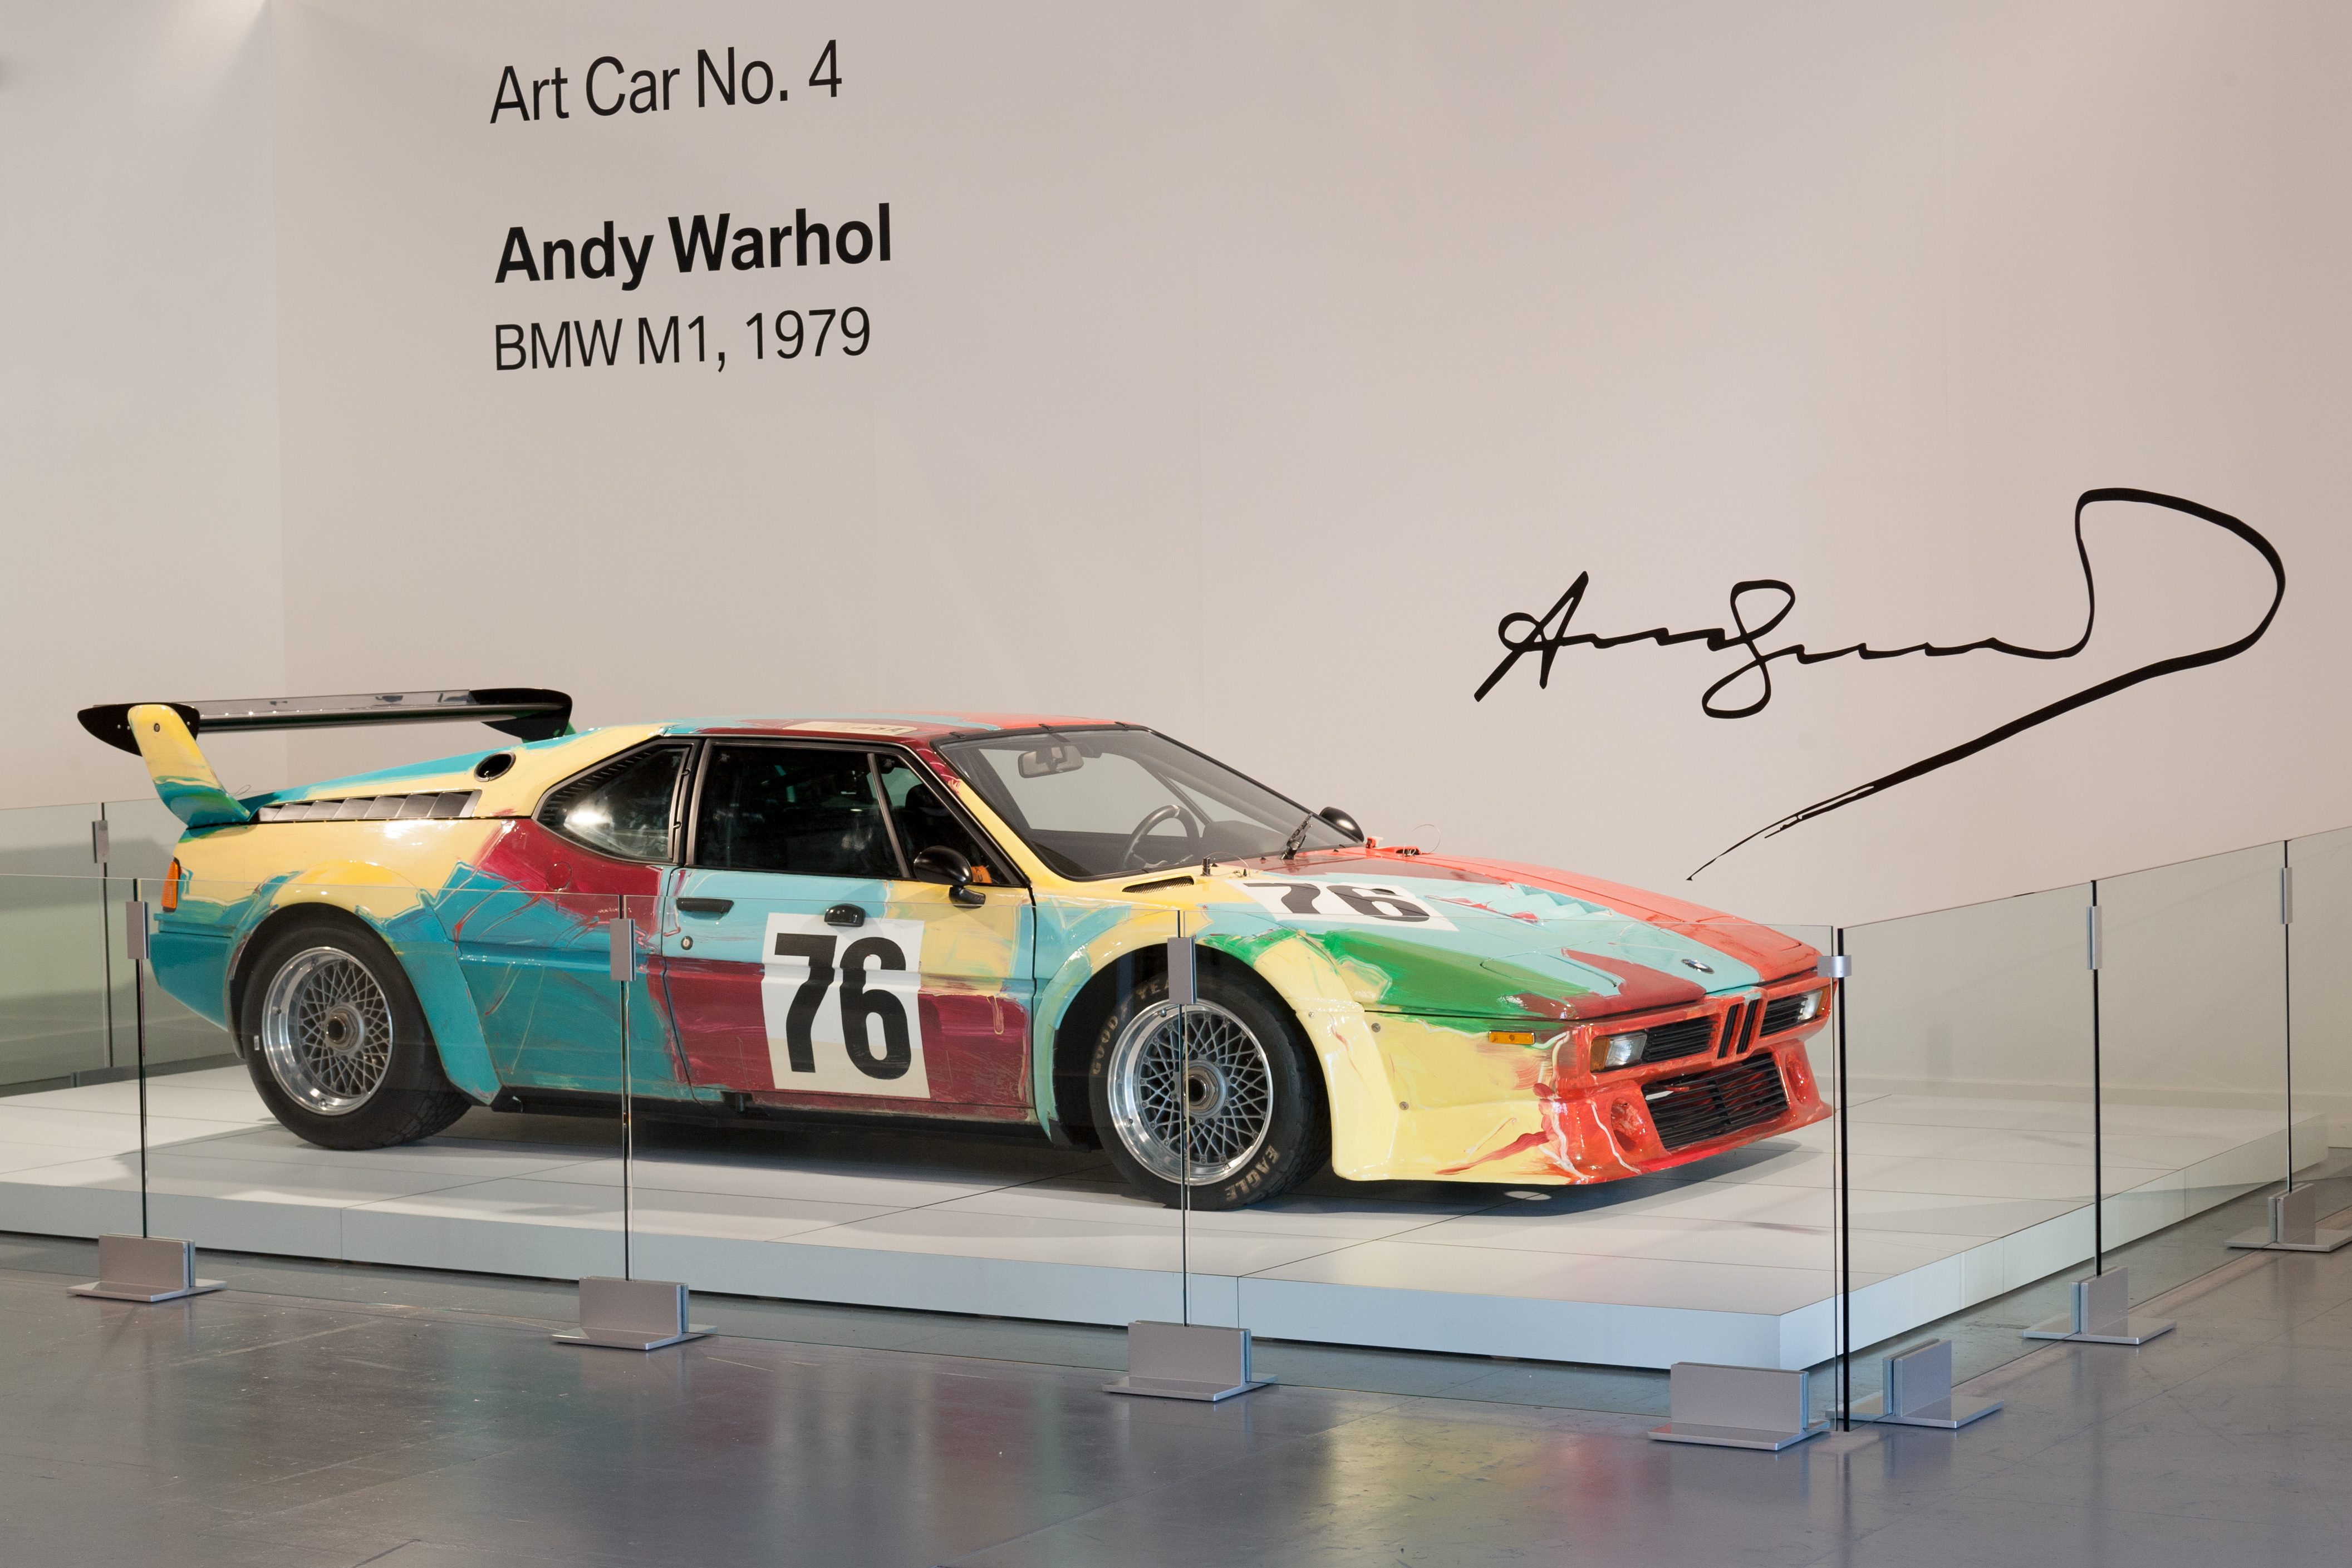 Andy Warhol S Bmw M1 Art Car Will Be Showcased At The